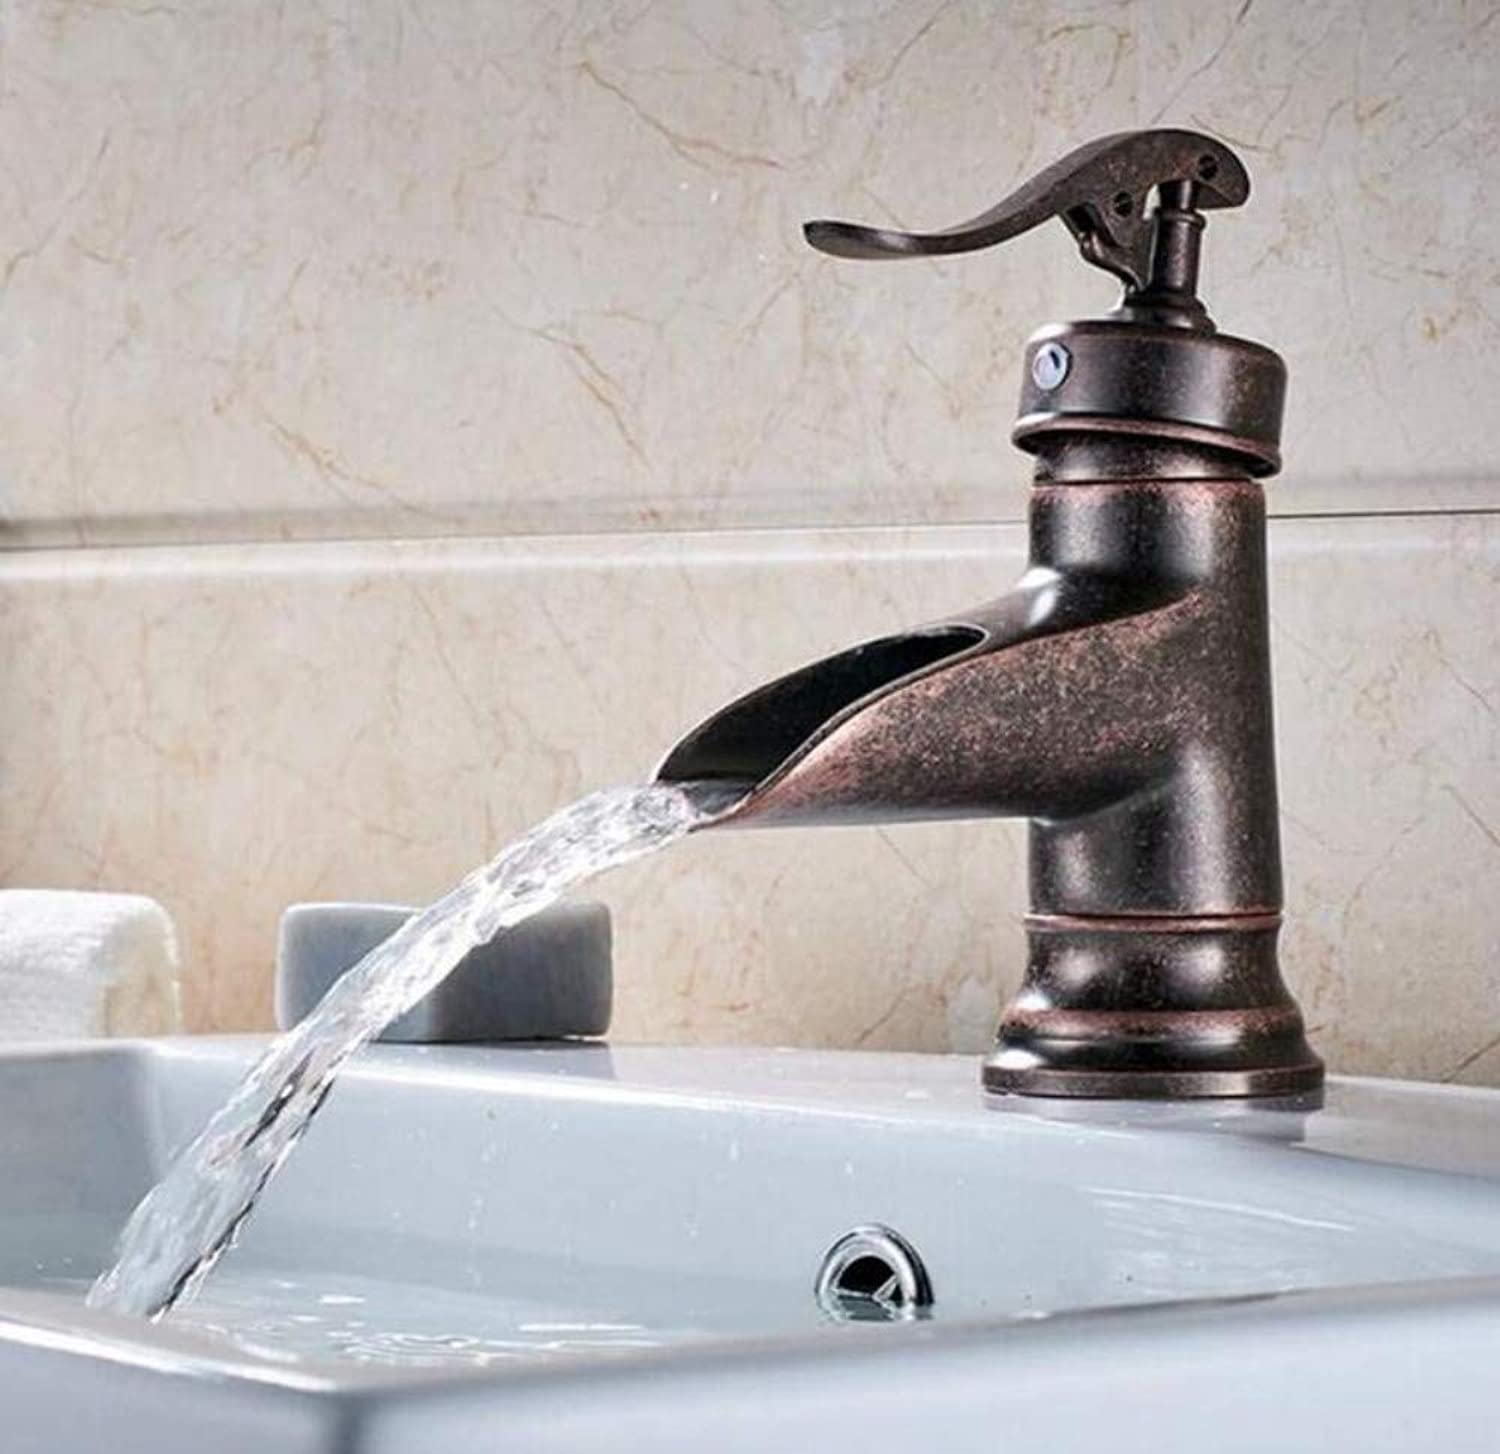 Brass Wall Faucet Chrome Brass Faucet Nickel Brushed Bathroom Sink Faucet Widespread Deck Mounted Dual Handles Mixer Tap